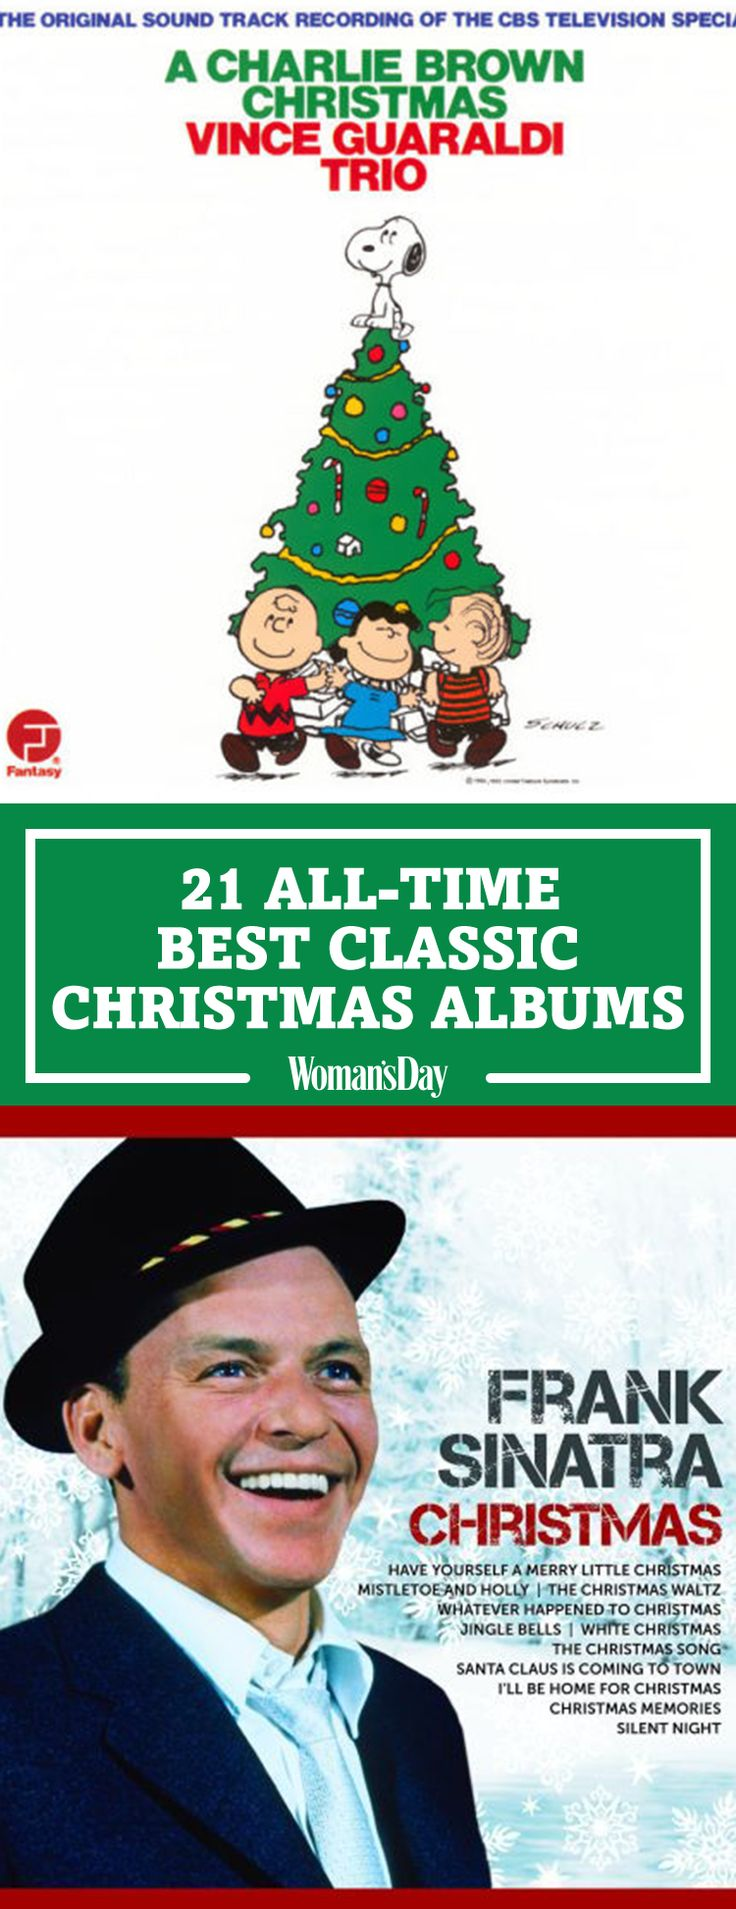 Swing into the holiday season with our list of our favorite holiday classic music albums. A Charlie Brown Christmas has all of the songs you love and know. Turn on Frank Sinatra Christmas at your holiday parties to get guests in the Christmas mood.